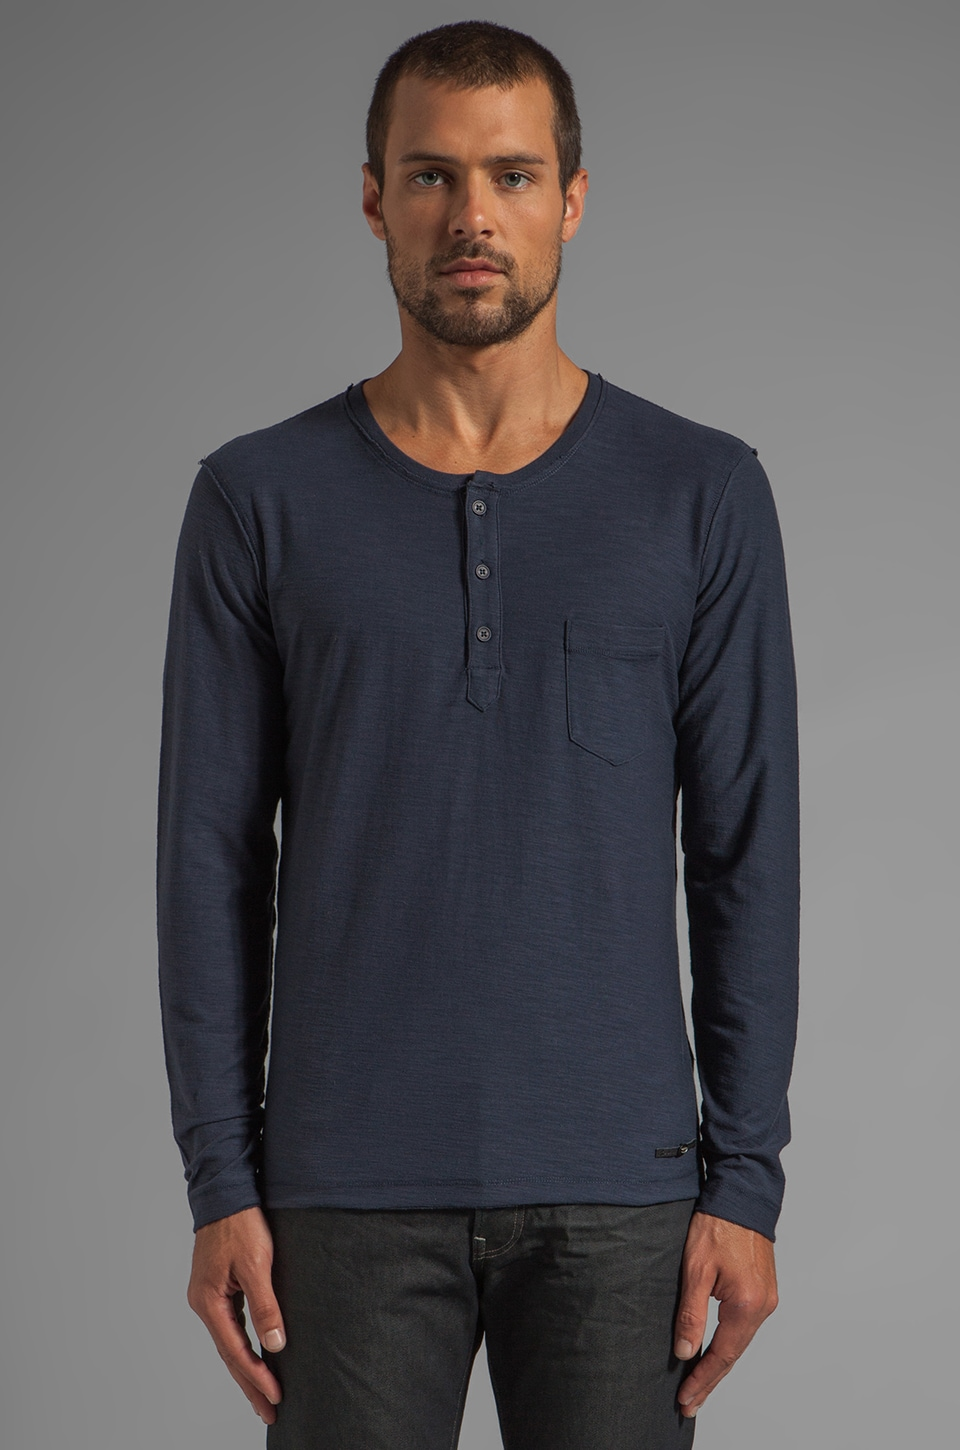 Diesel Canopy Long Sleeve in Navy Blue